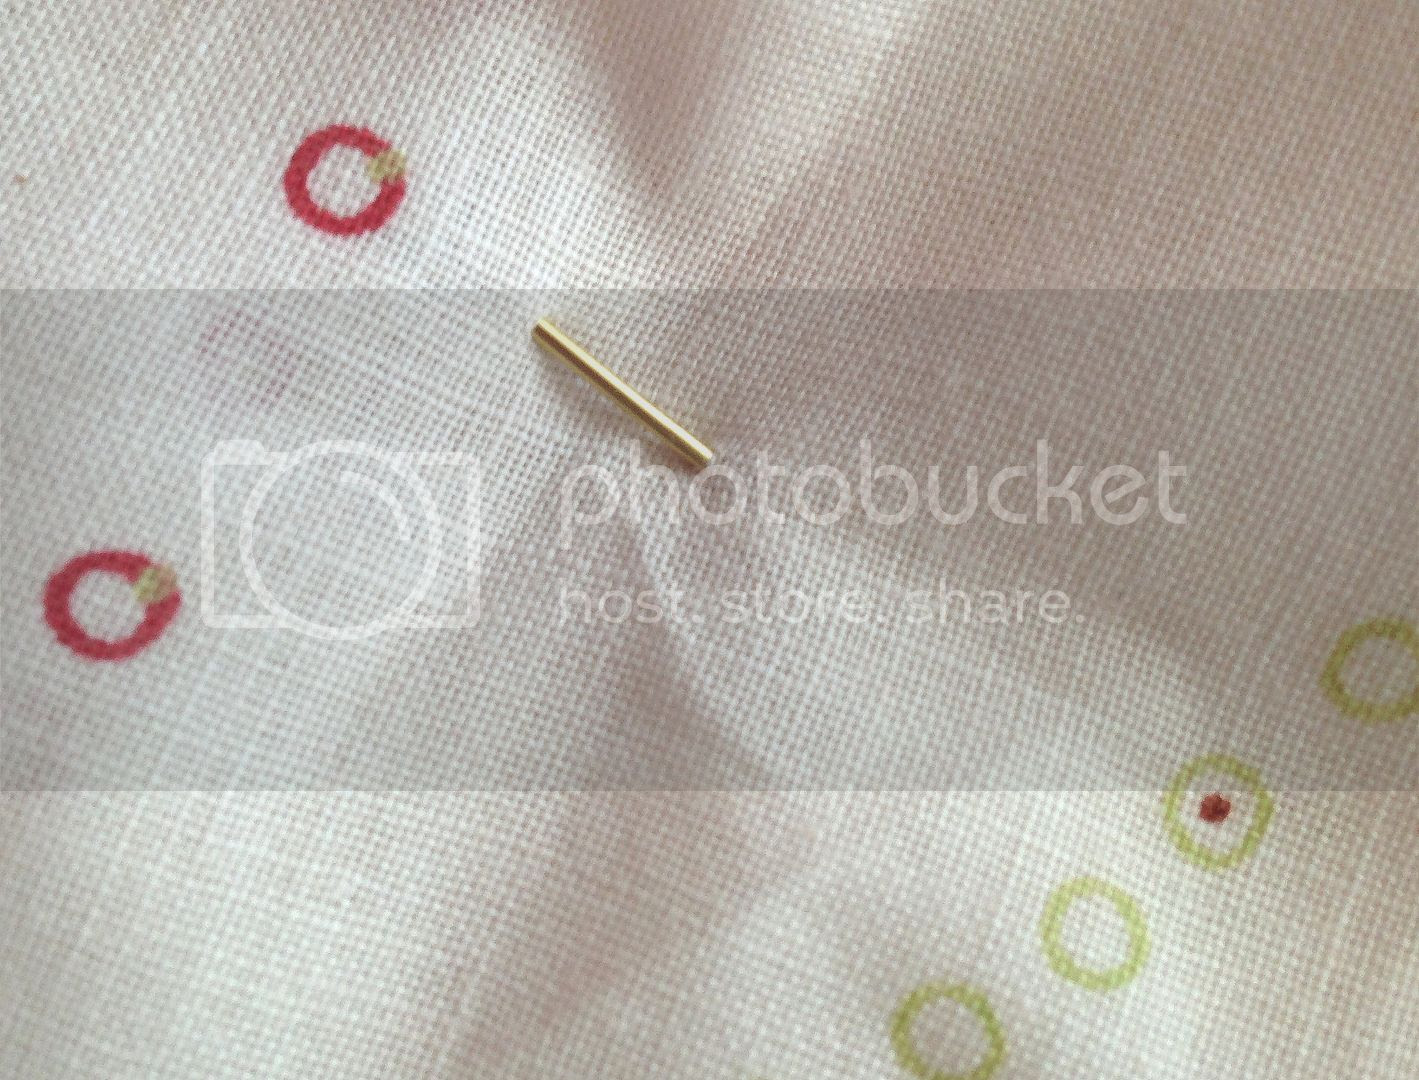 Chronically Vintage: By request: How to secure a brooch in place